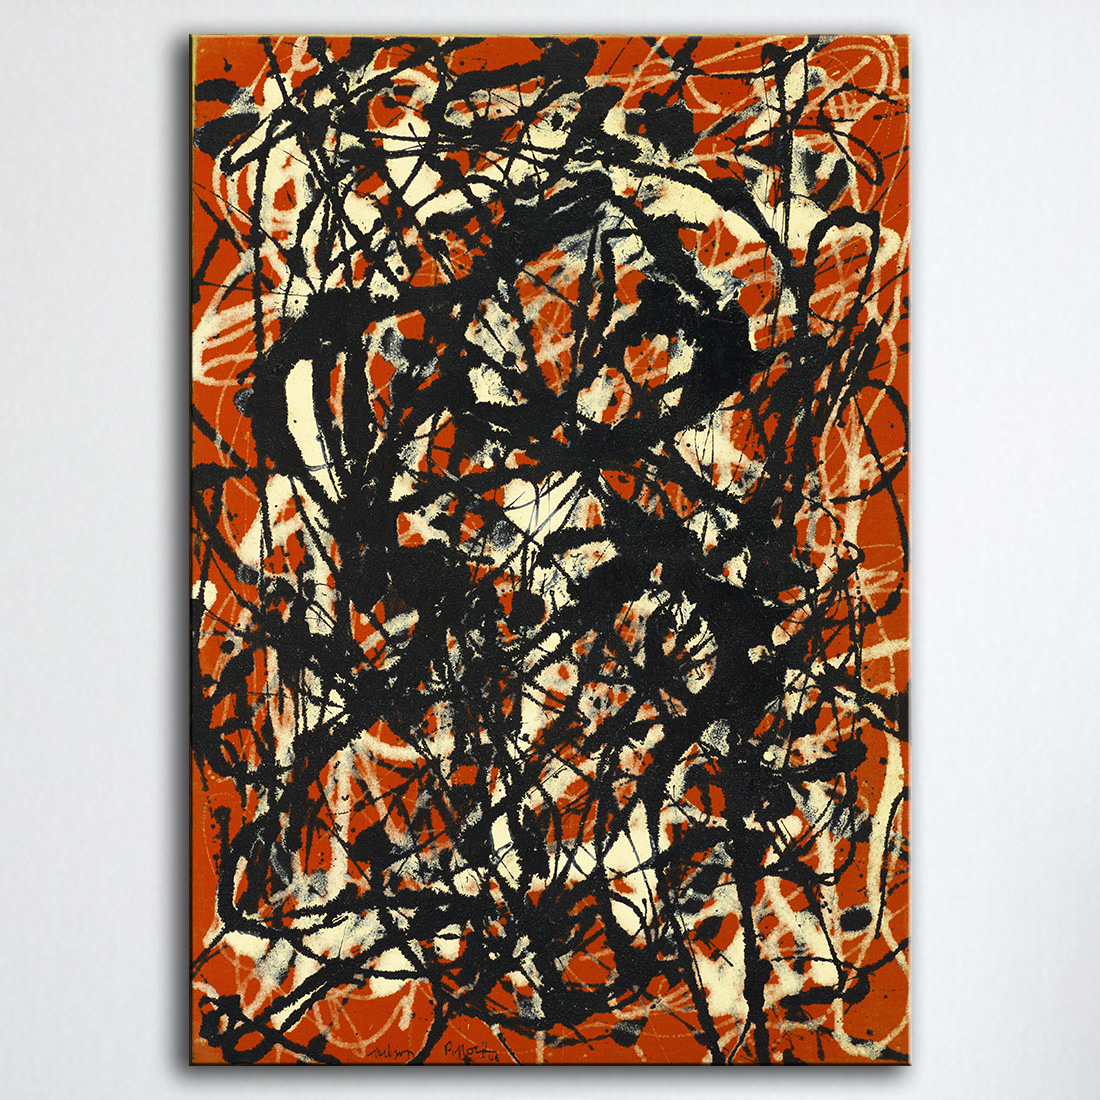 Jackson pollock paintings reviews online shopping for Large artwork for sale